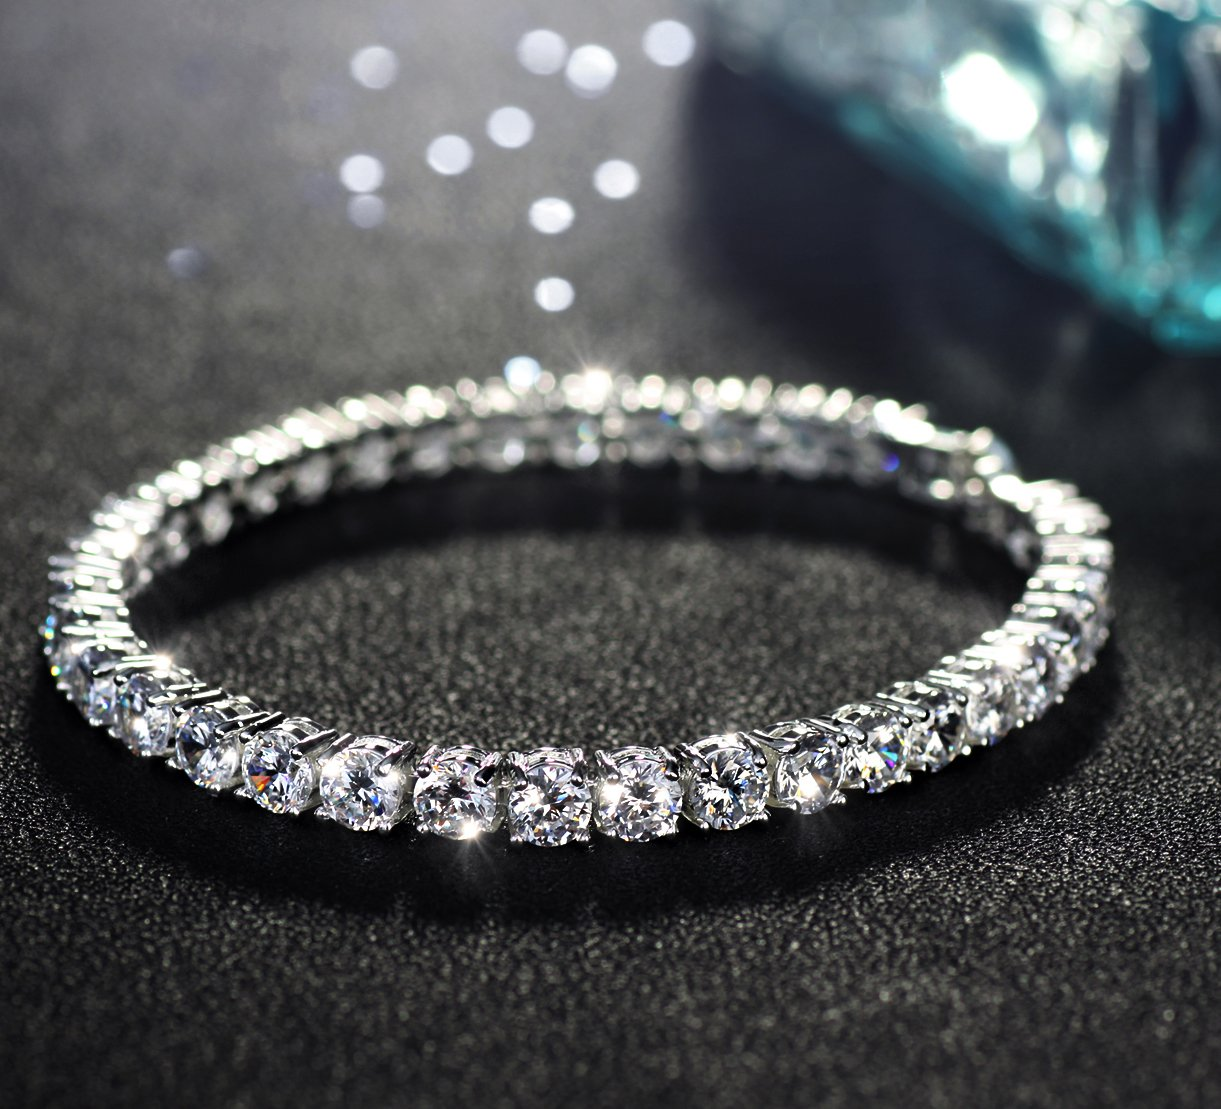 Neoglory Jewelry S925 Silver White Round-Cut Cubic Zirconia Classic Tennis Bracelet 7.7Inch by Neoglory (Image #5)